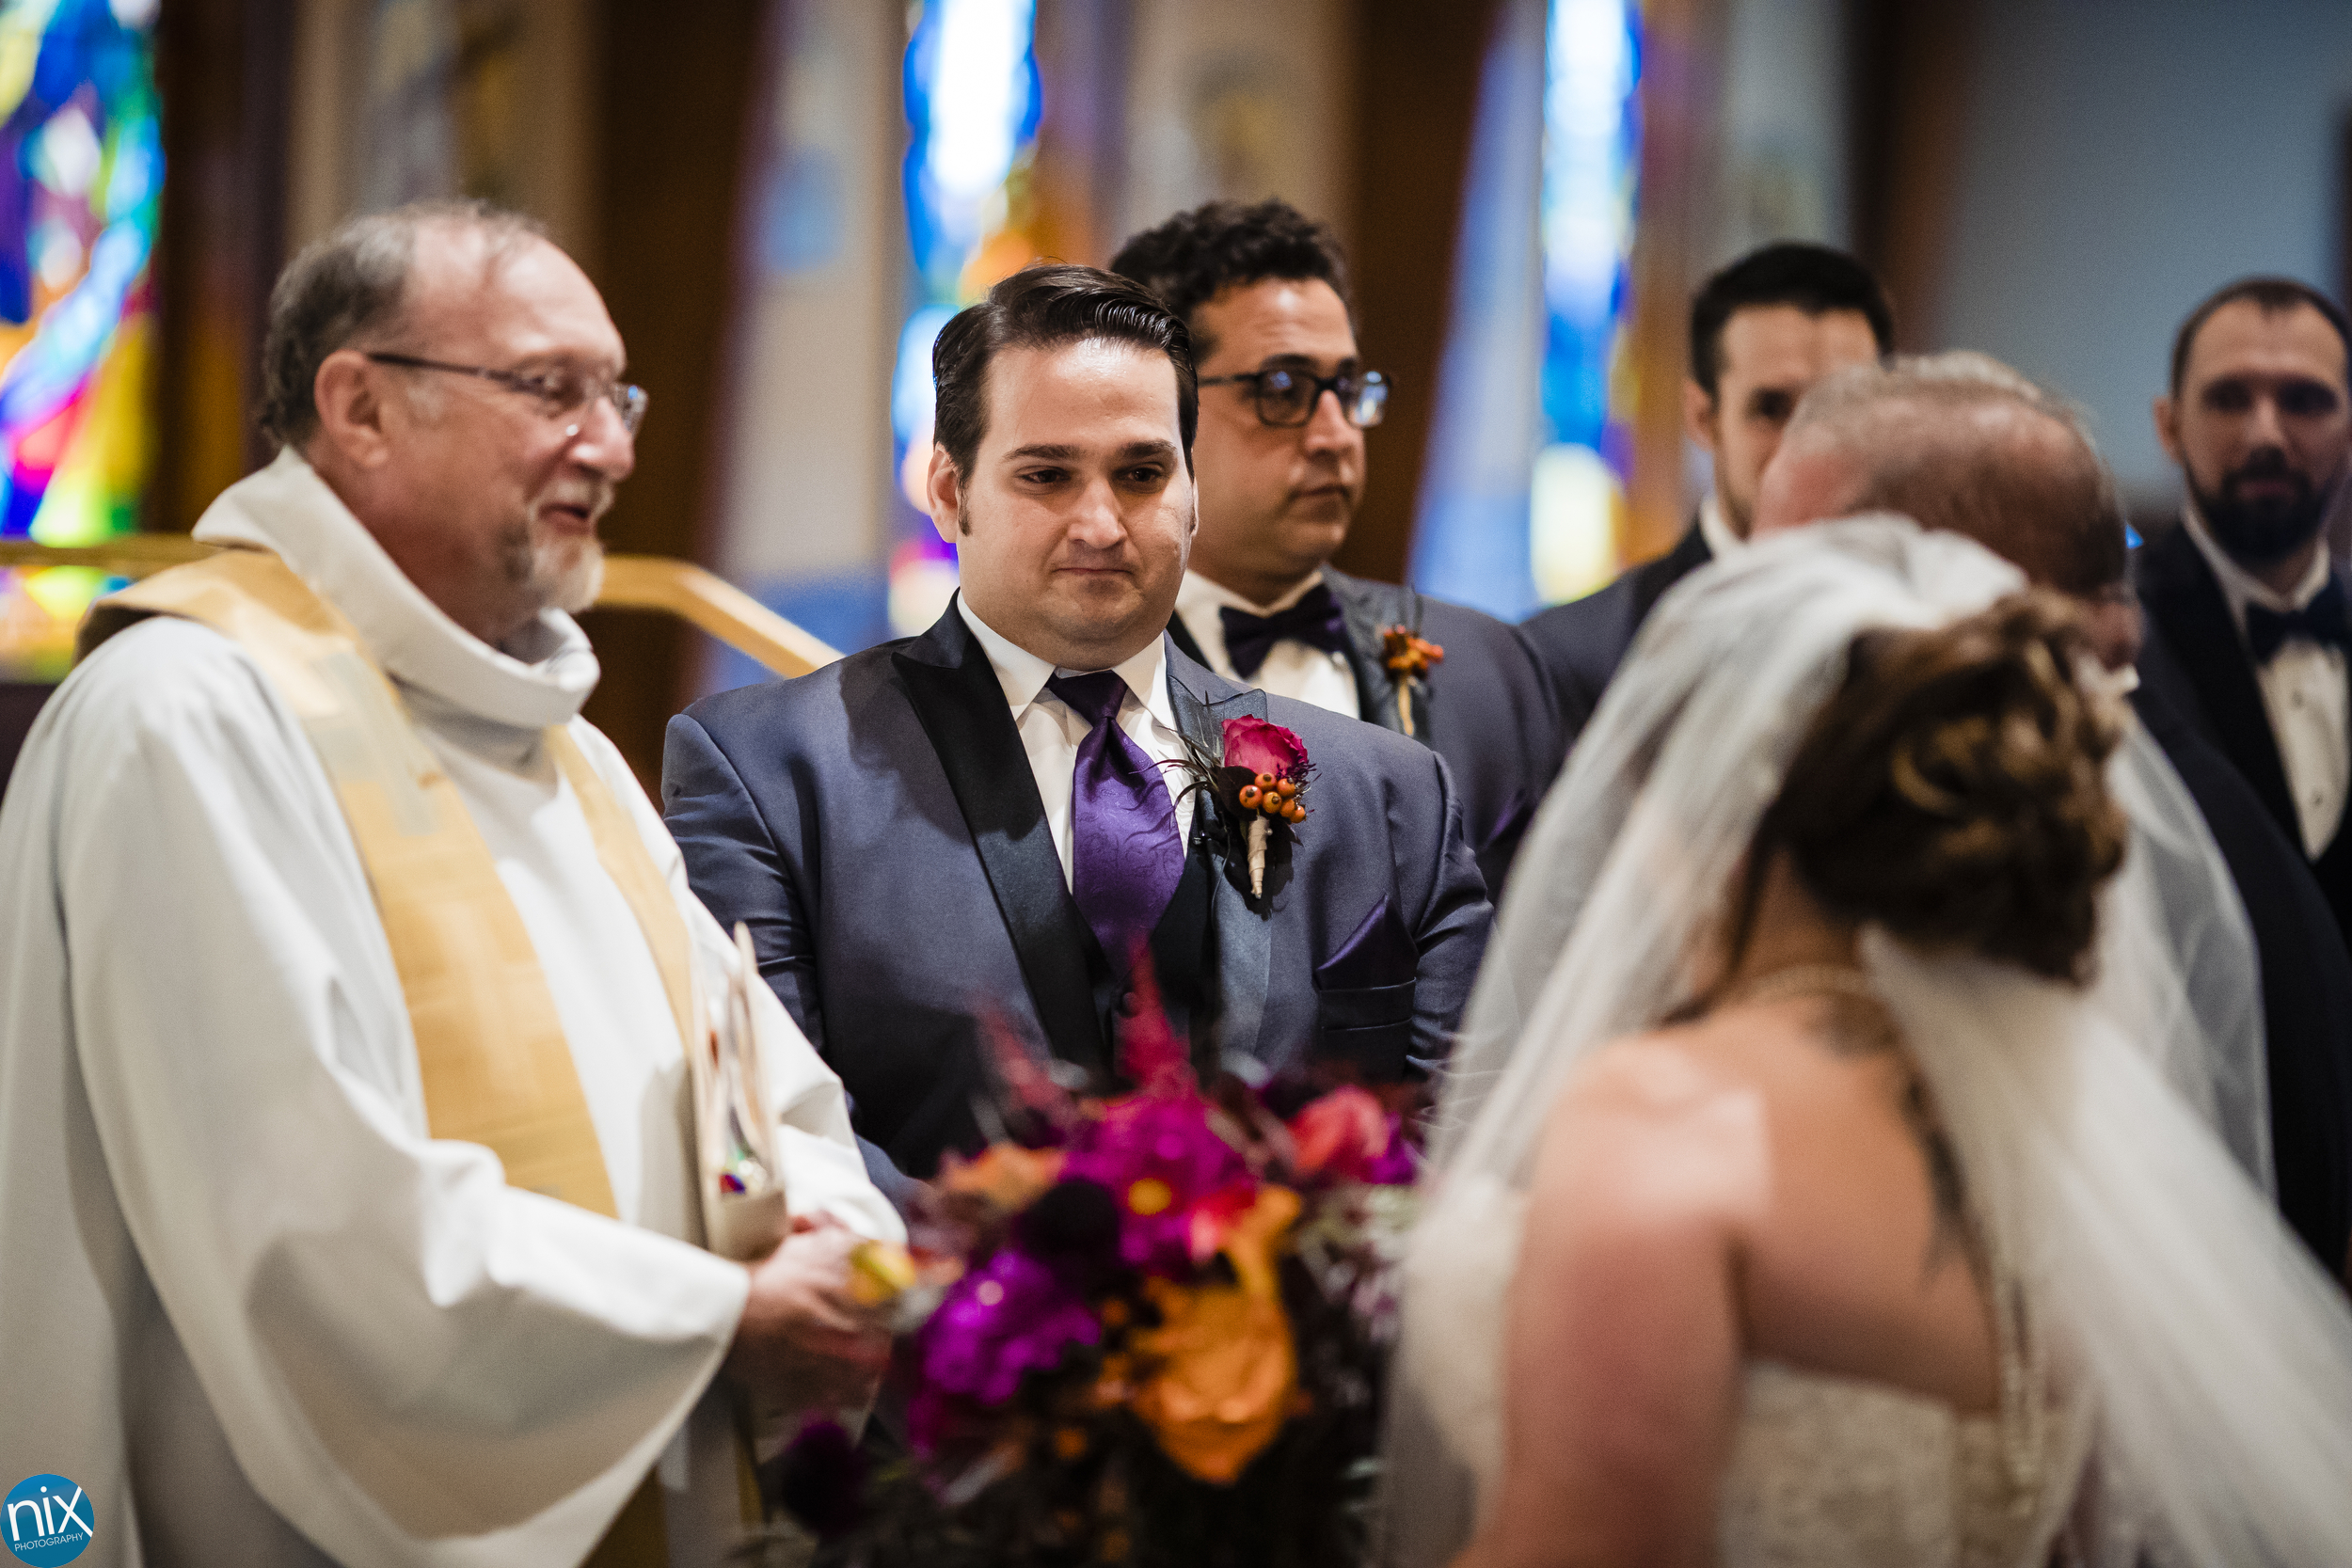 groom looks at bride during wedding ceremony.jpg